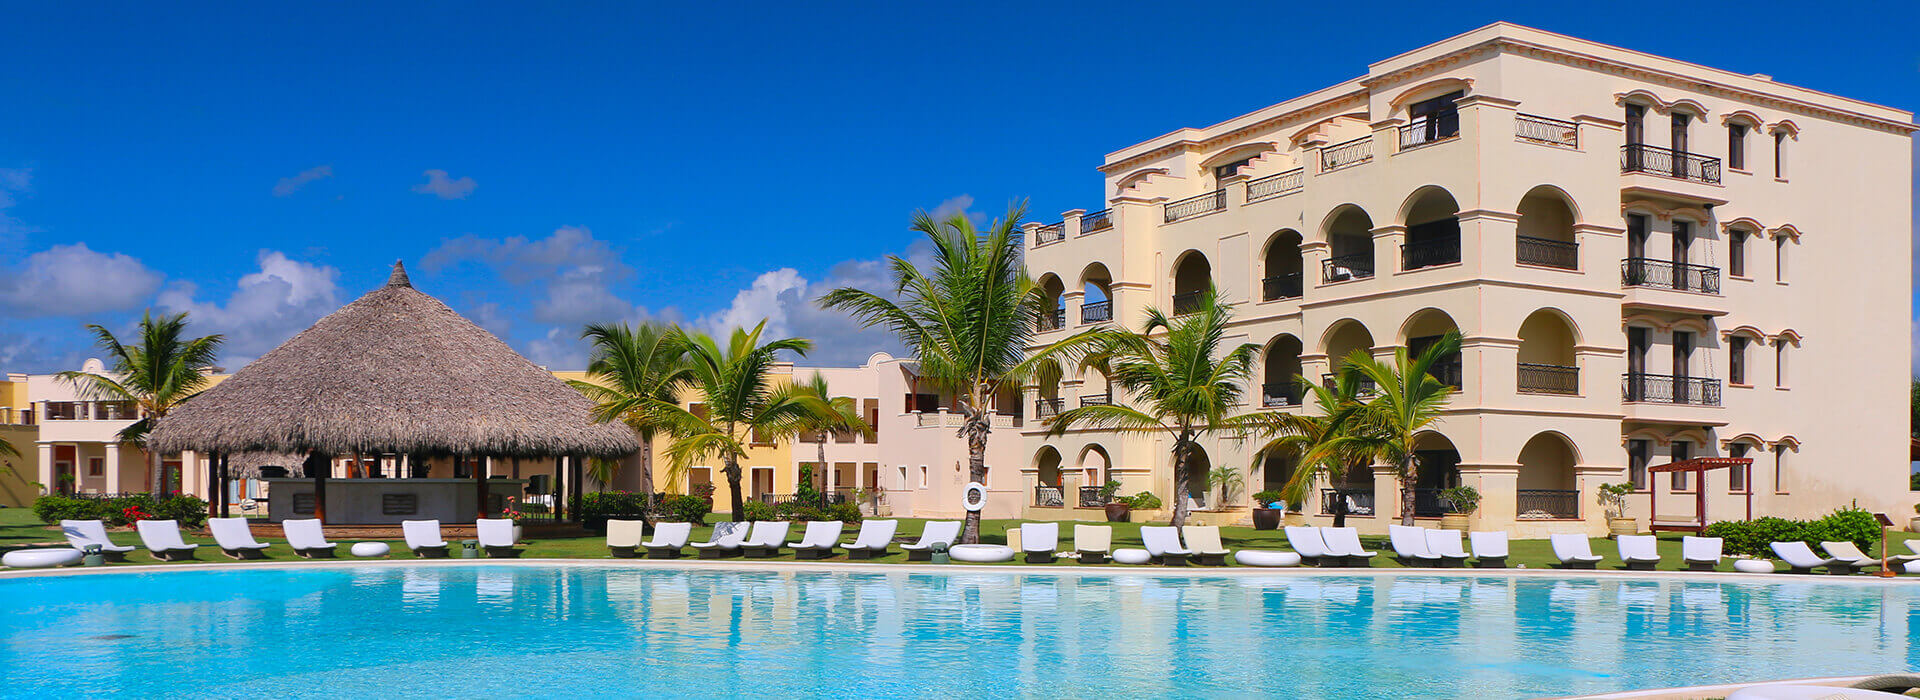 alsol luxury village punta cana